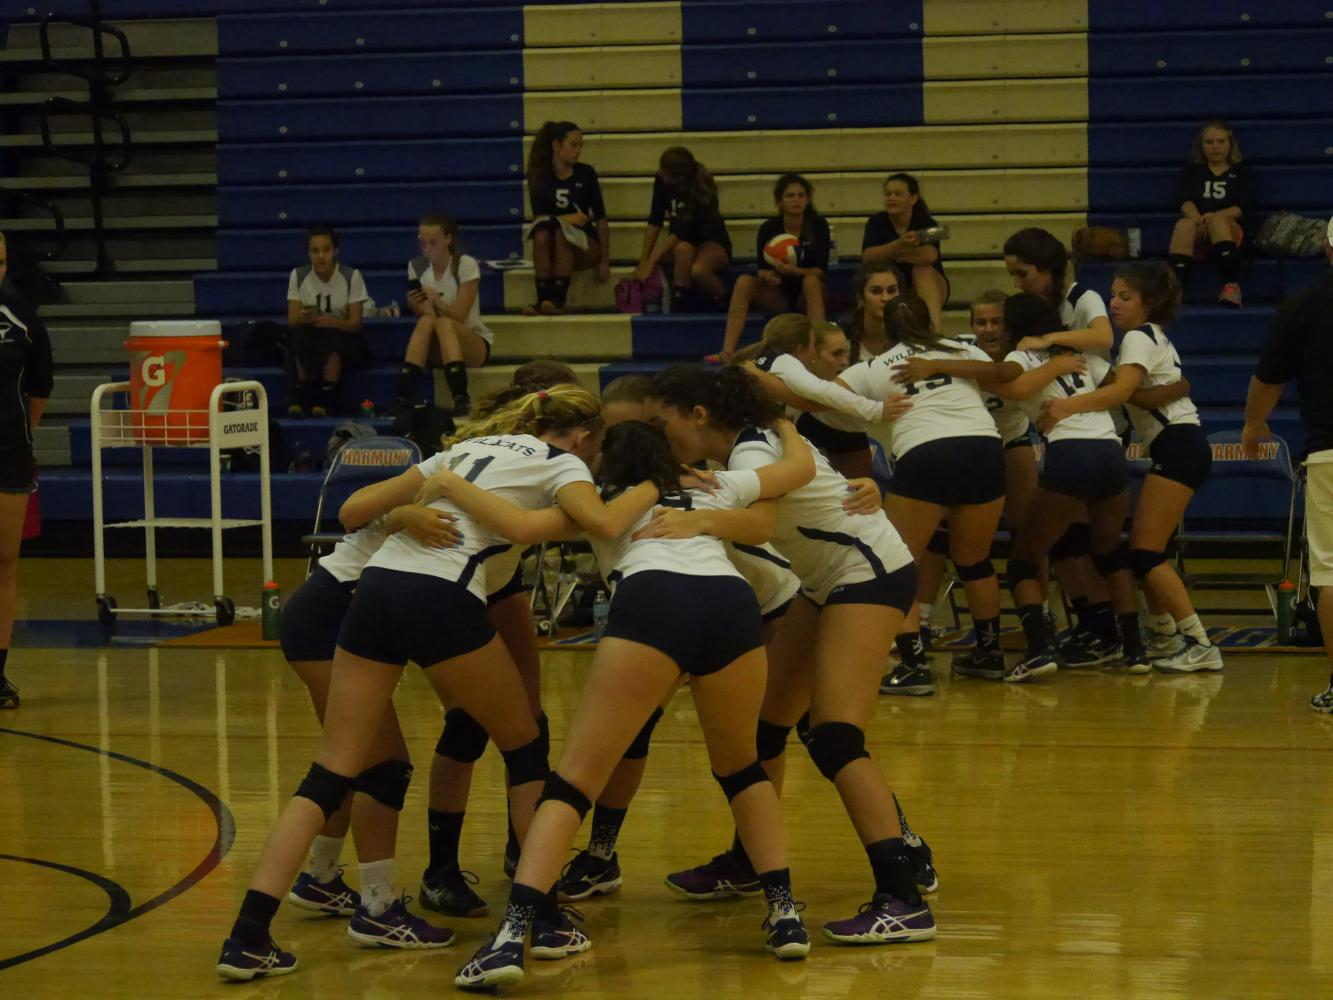 The varsity volleyball team gathers together before an important game.